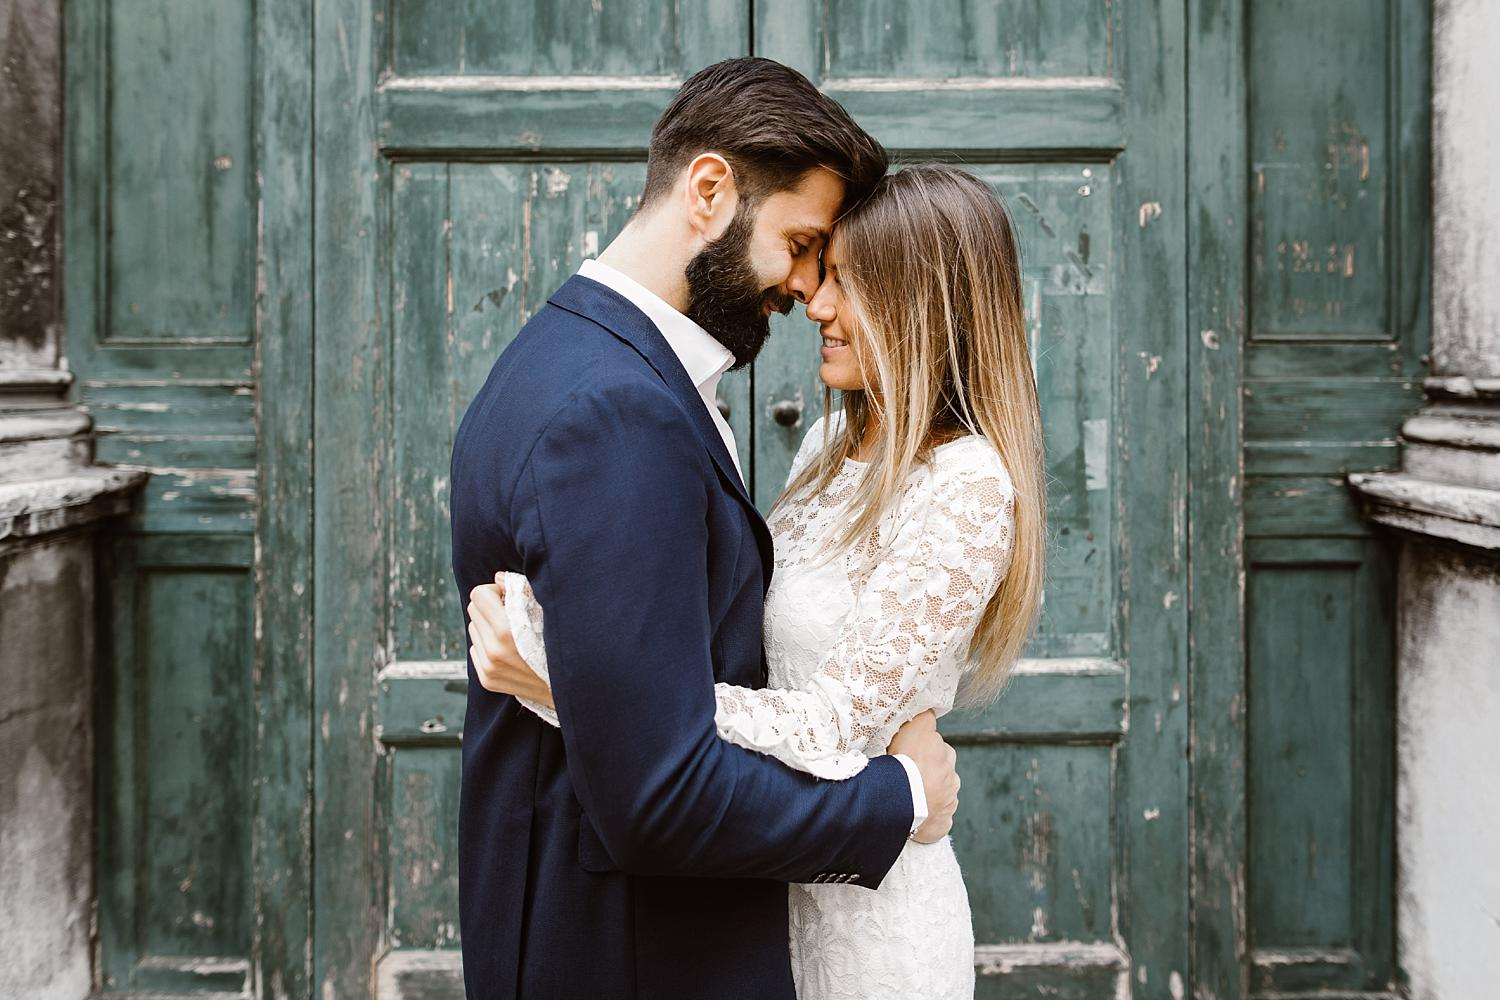 fm venice 0001 - Flora & Marco - A Sensual Couple Session in Venice